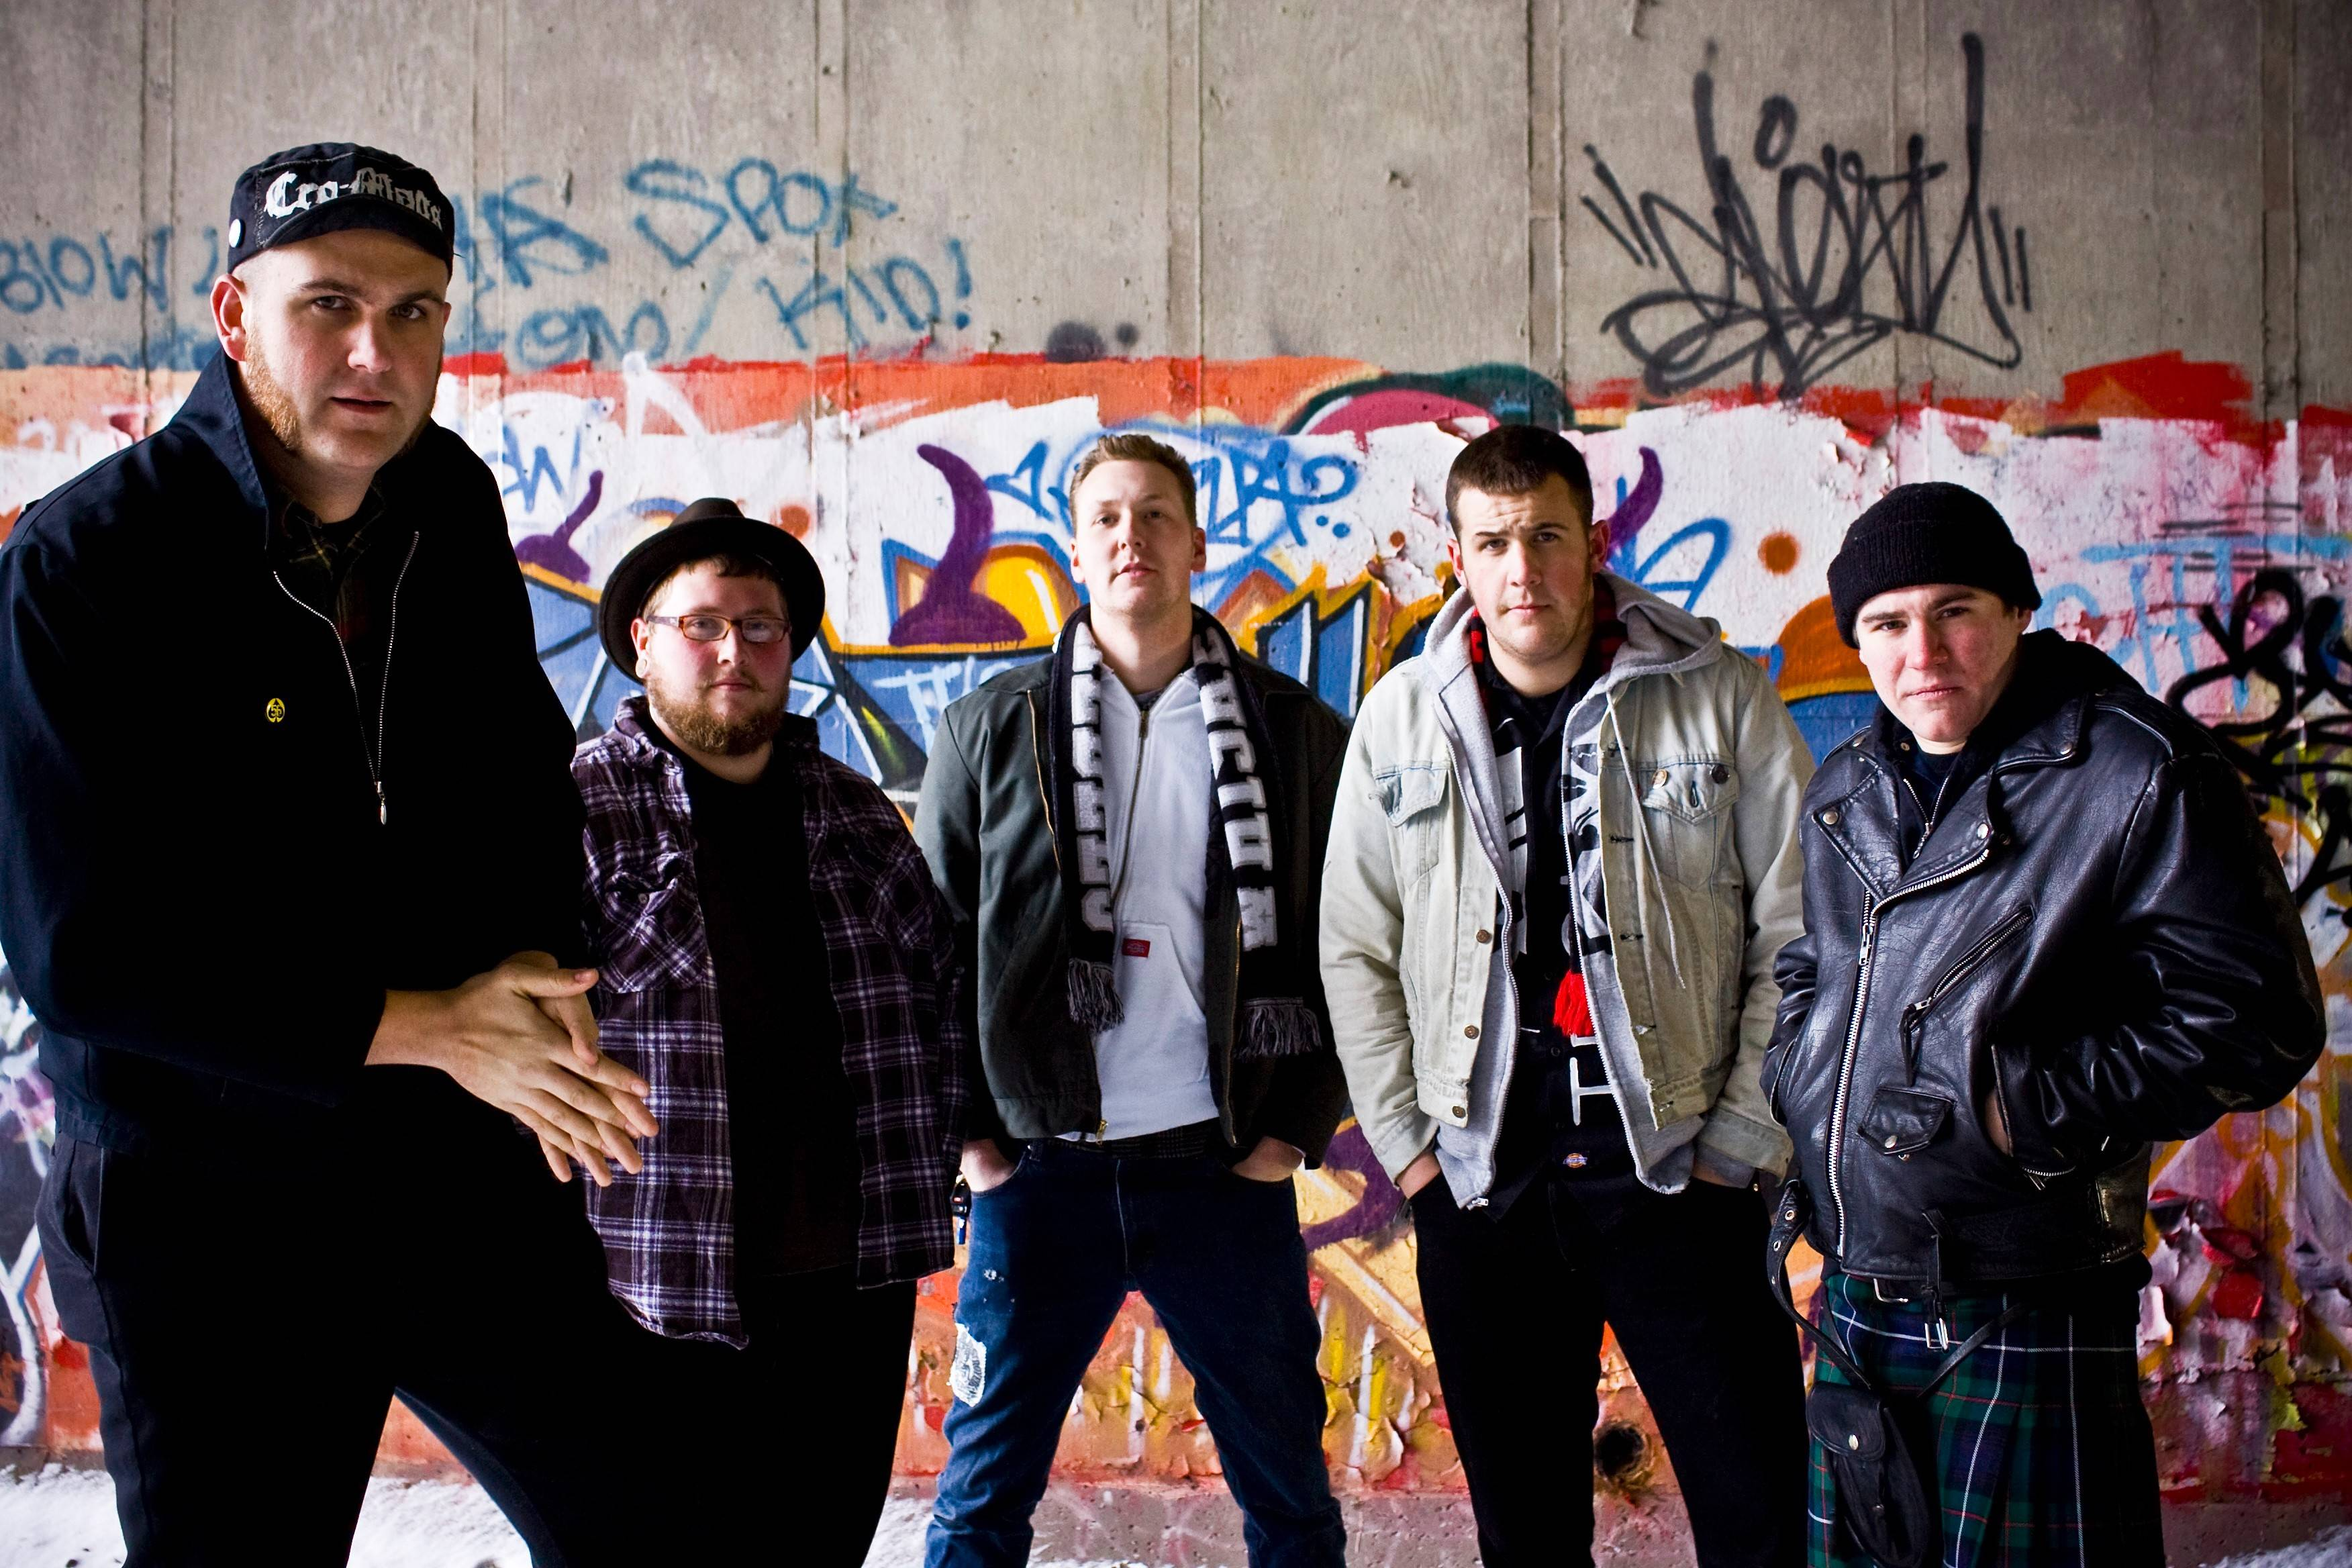 Flatfoot 56, a Celtic-punk band from Chicago, will perform this weekend in Lombard.